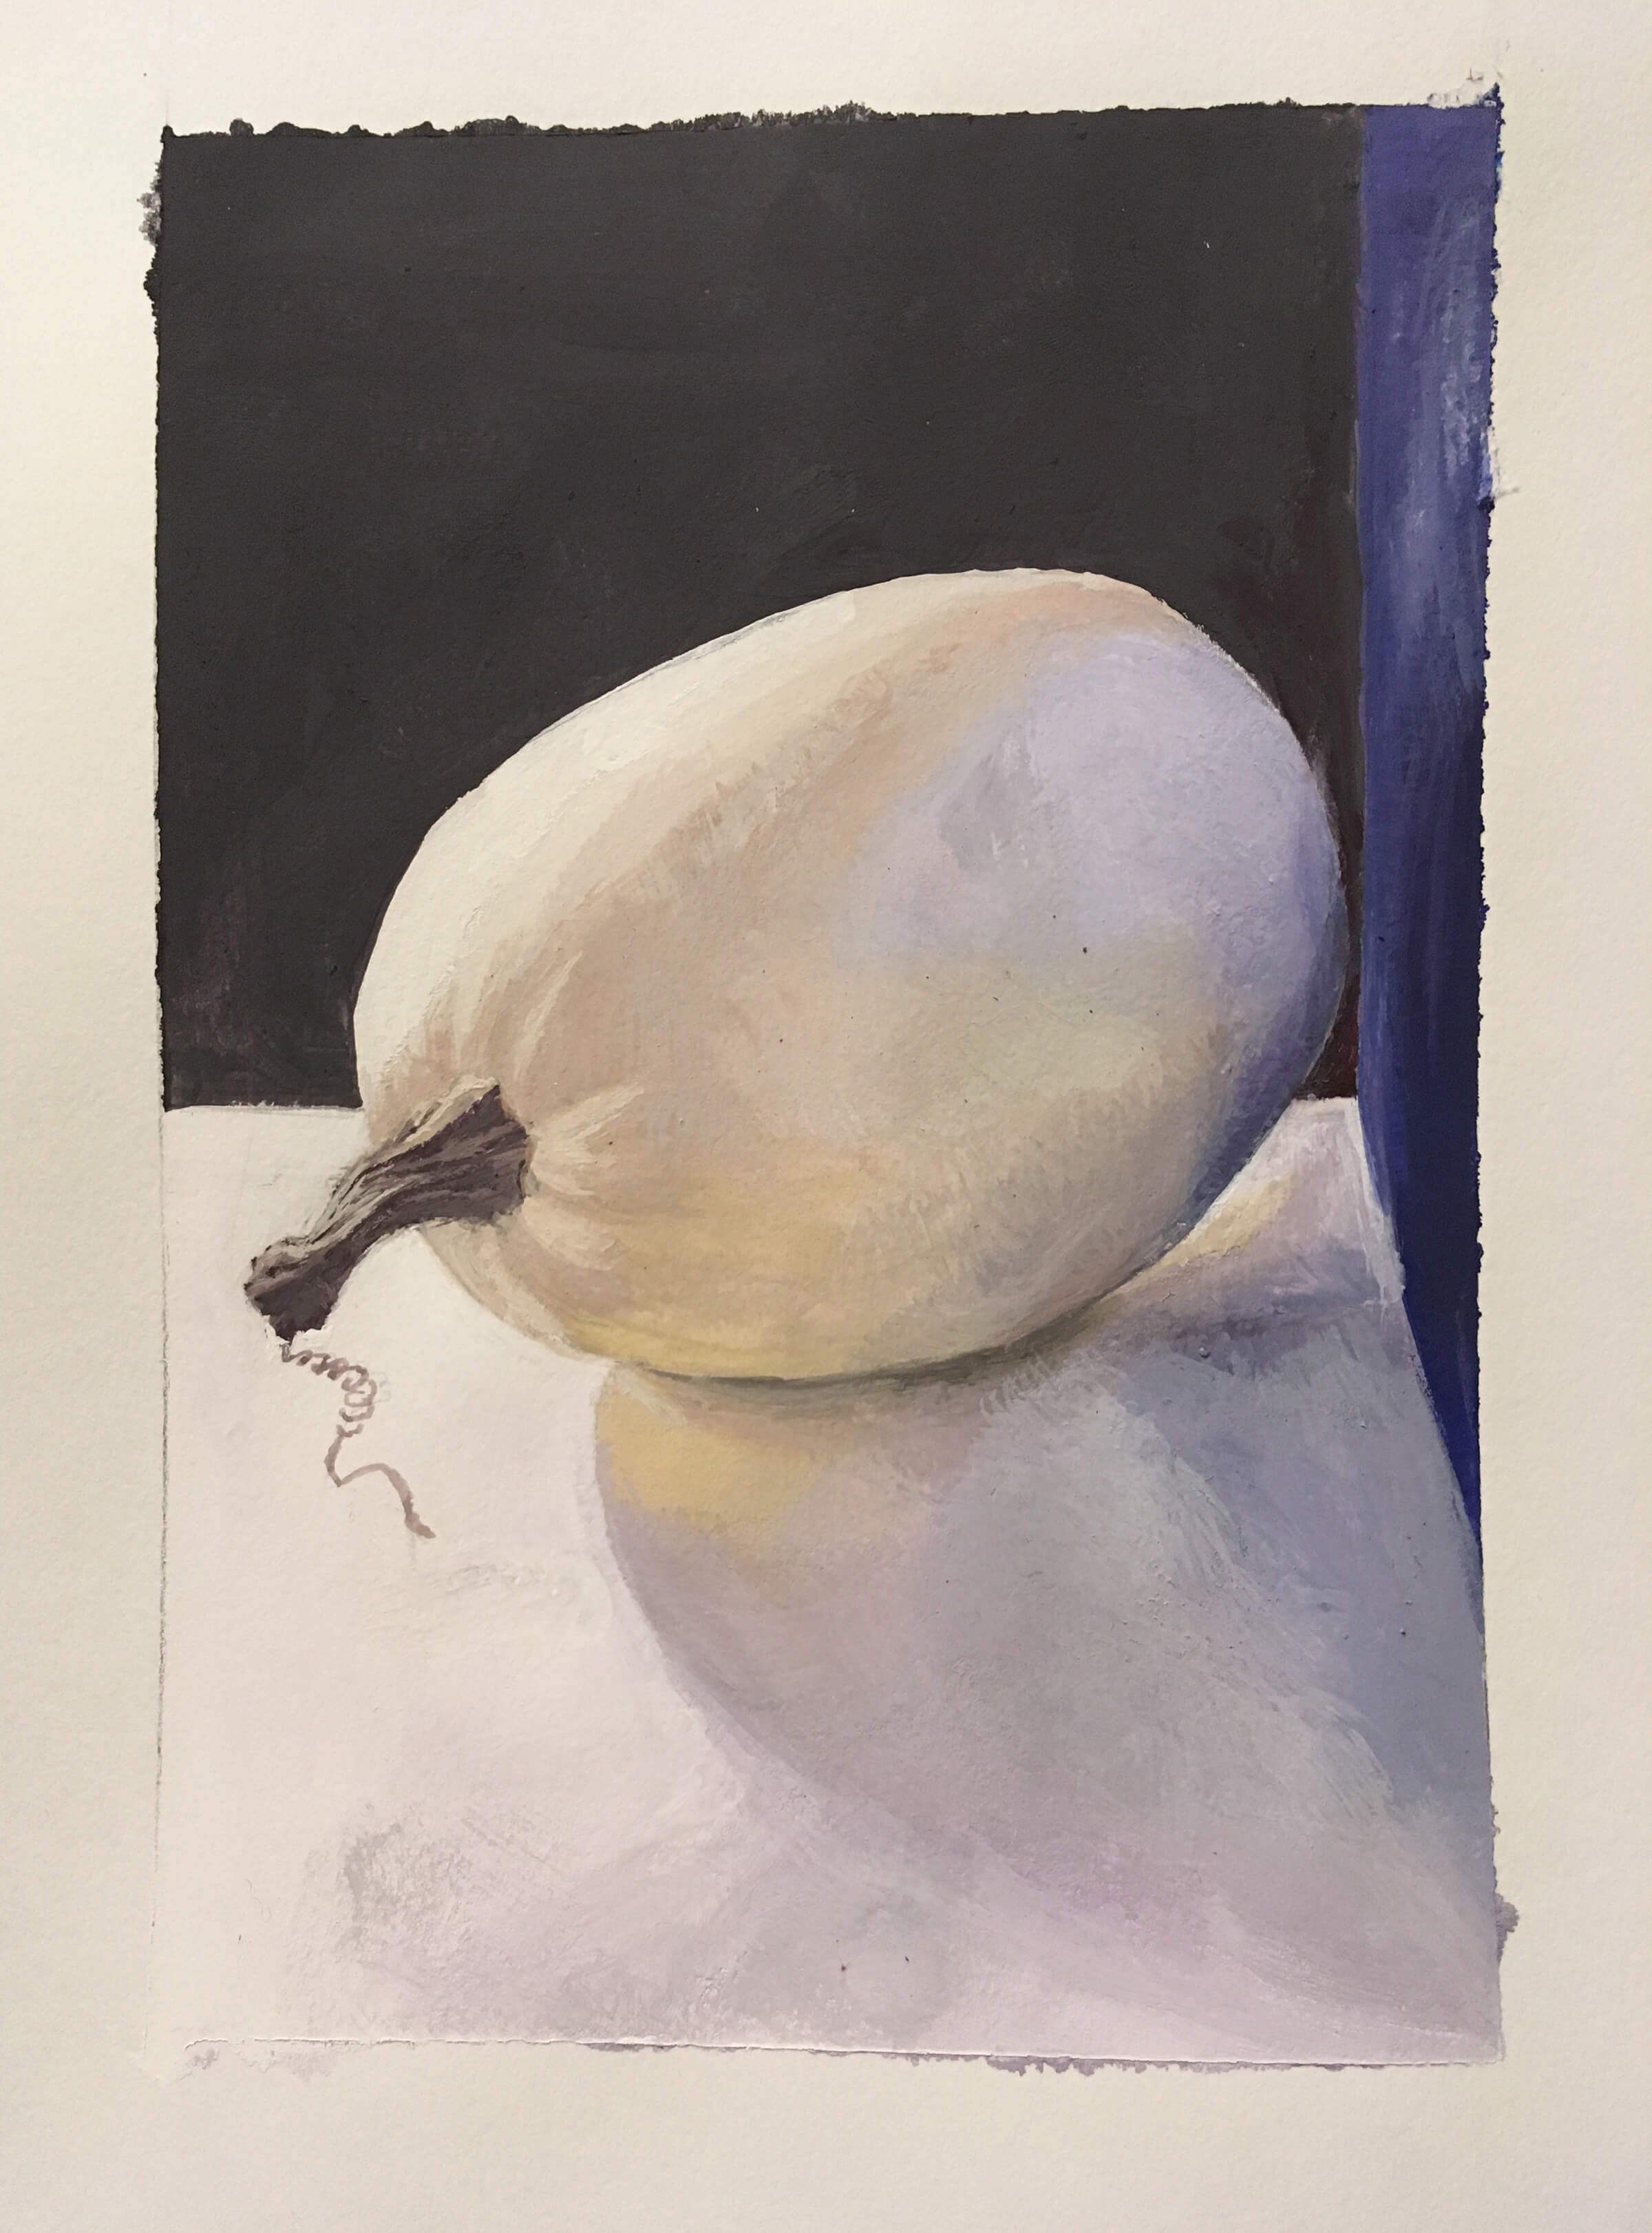 still-life traditional painting of a white gourd lying on its side